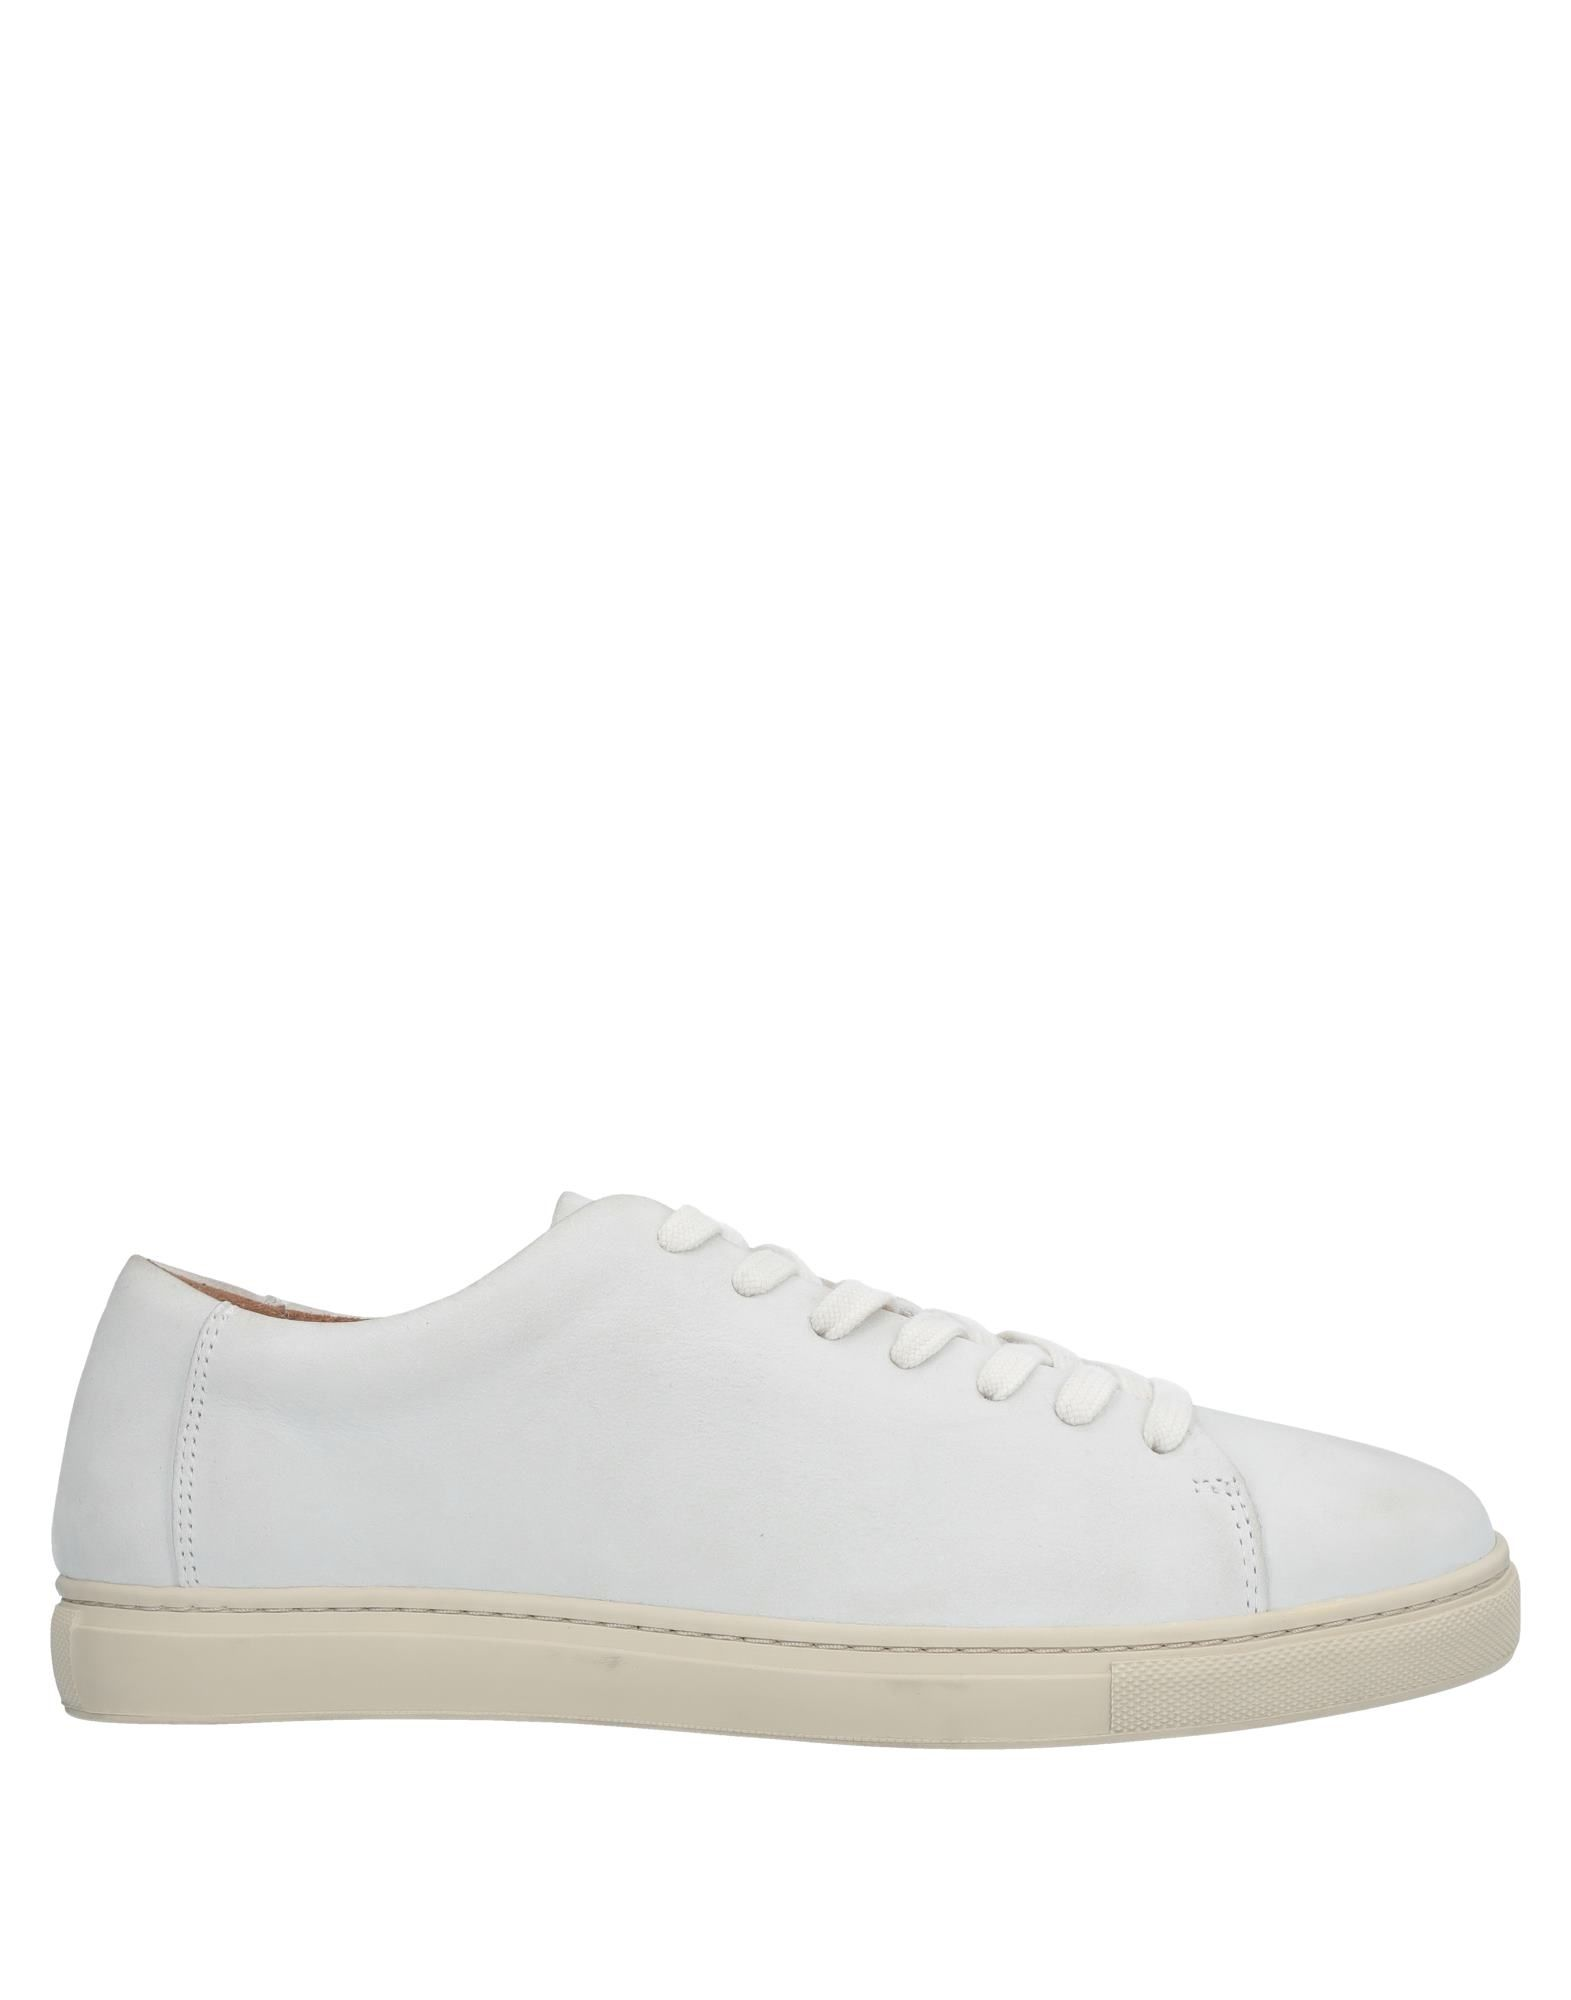 Sneakers Selected Homme Uomo - 11537237HO